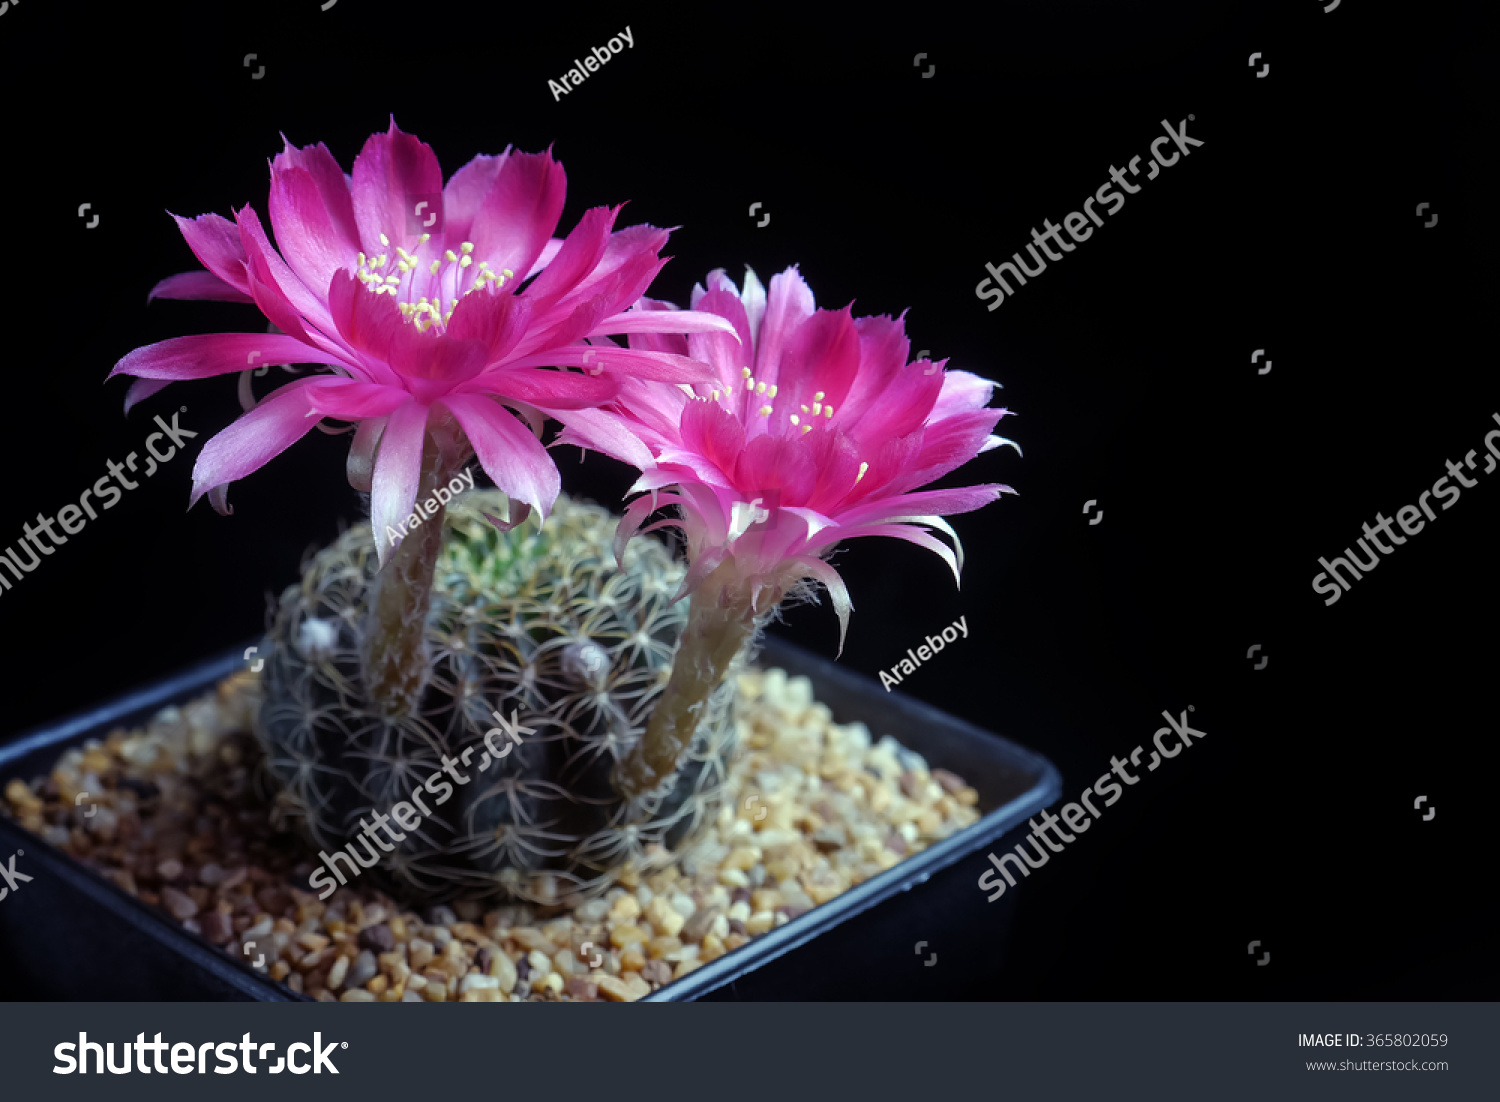 Red Beautiful Cactus Flowers Bloom On Isolate Black Background Ez